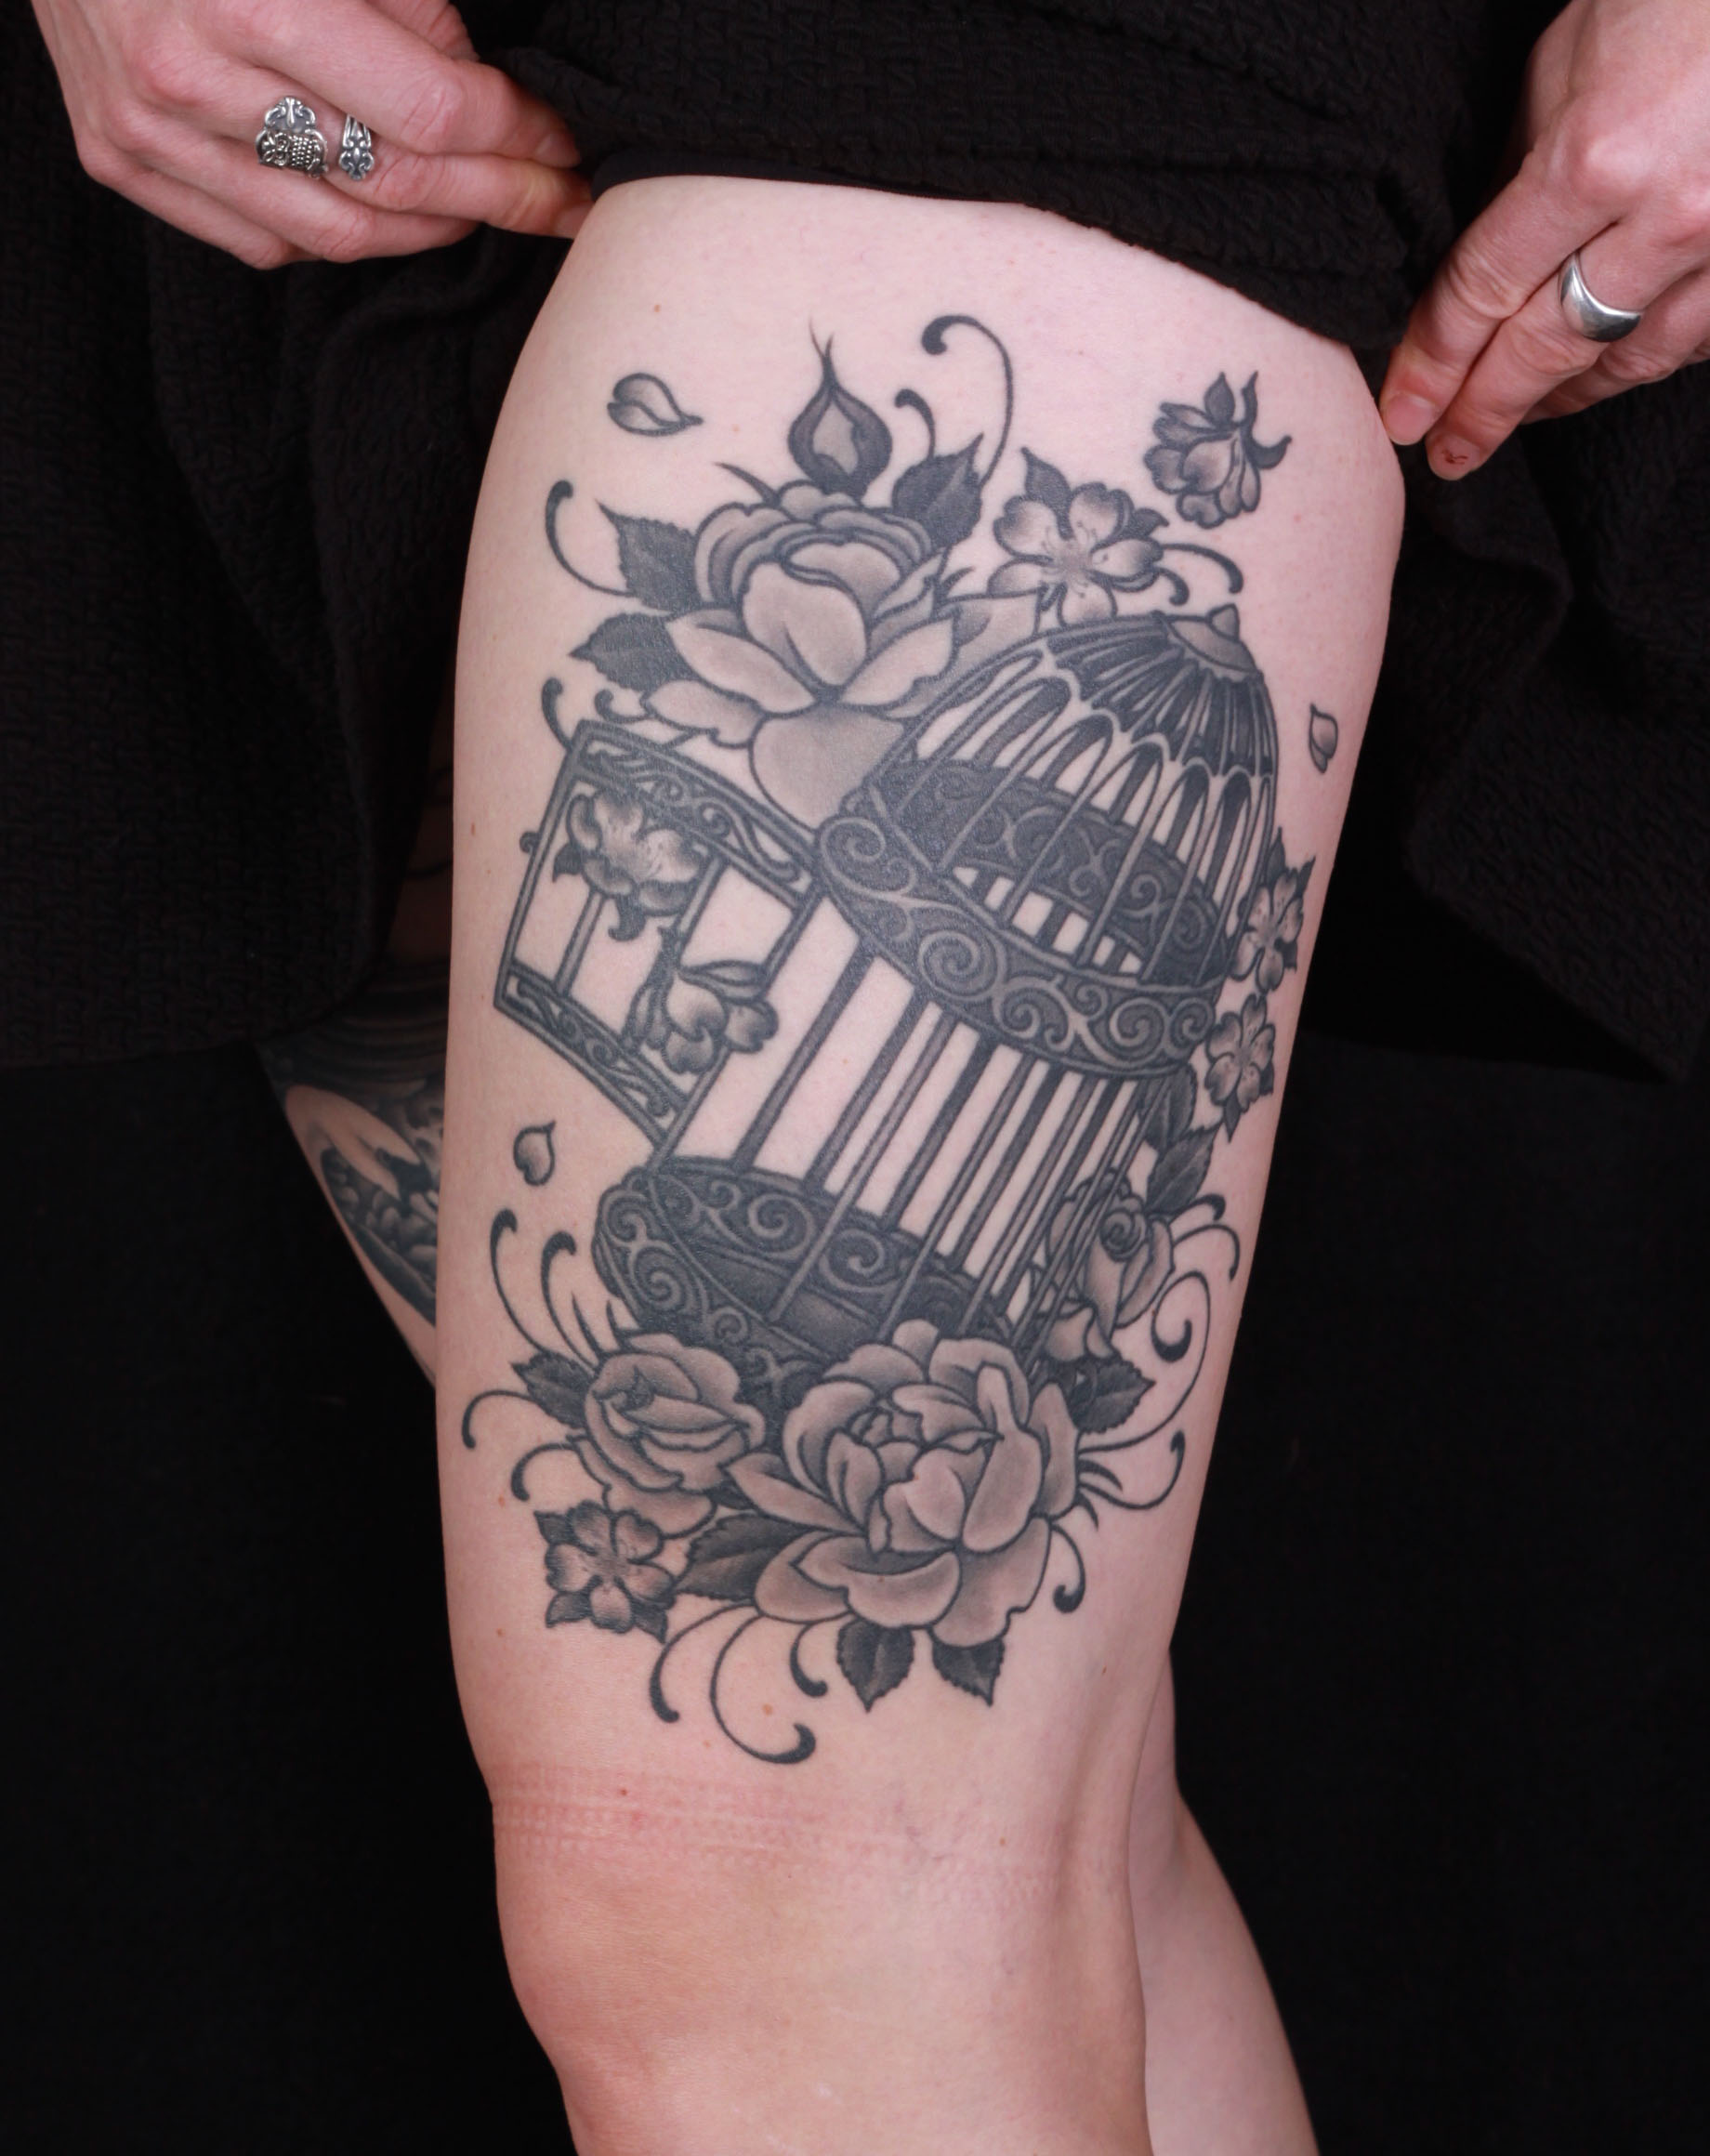 brian-thurow-dedication-tattoo-thigh-black-and-grey-roses-flowers-open-cage